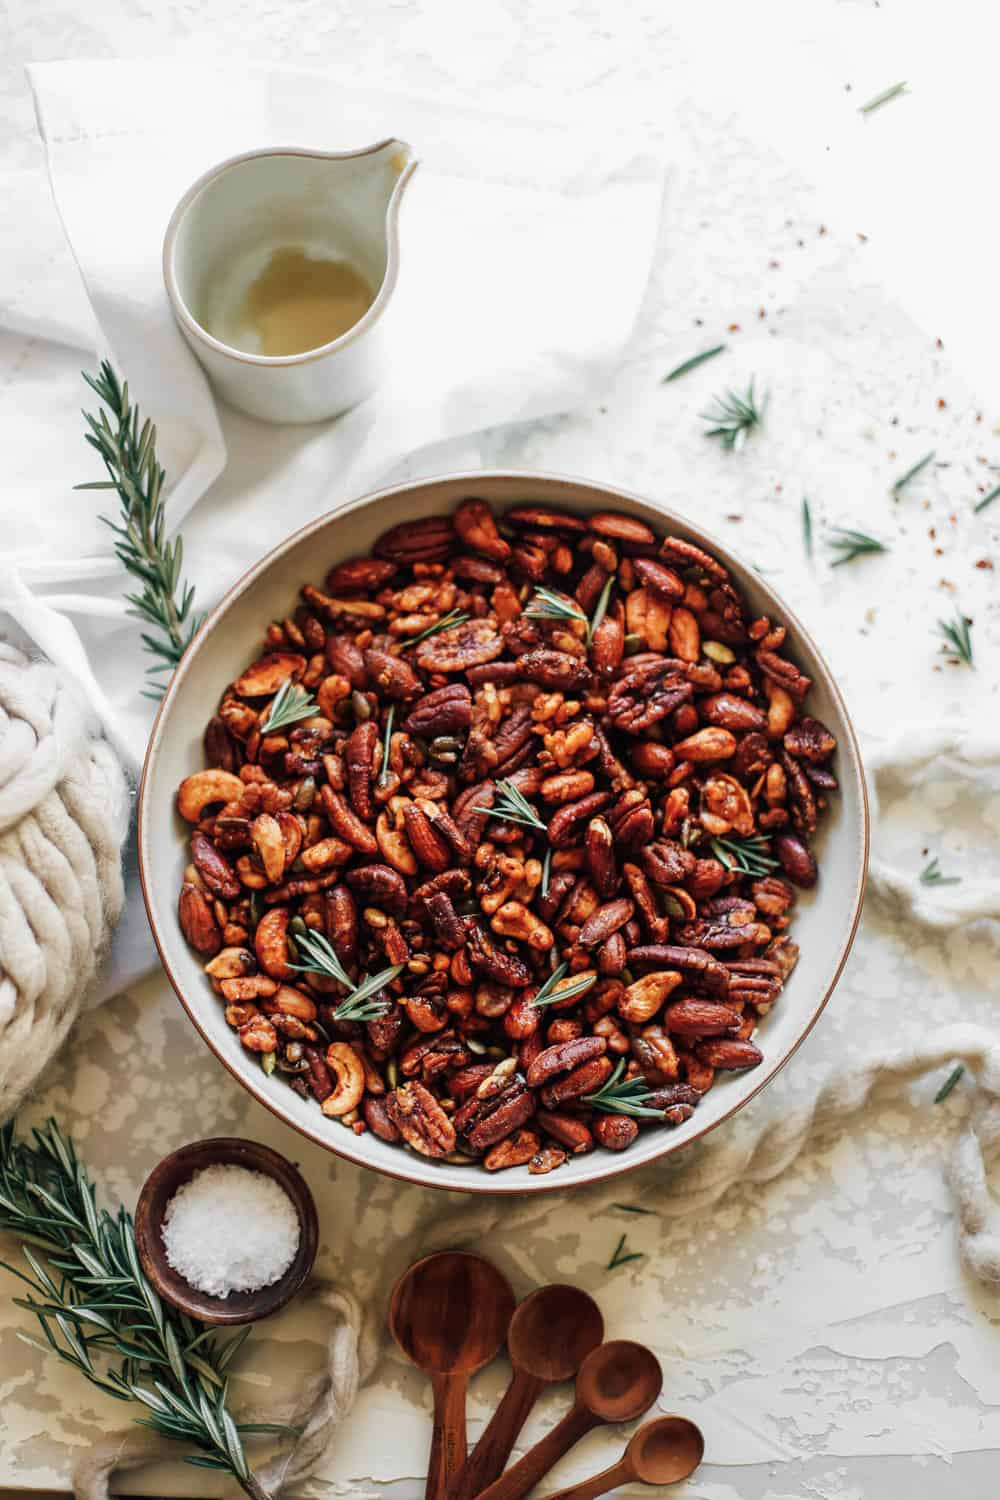 A large bowl of Sweet and Smoky Mixed Holiday Nuts with rosemary sprigs.